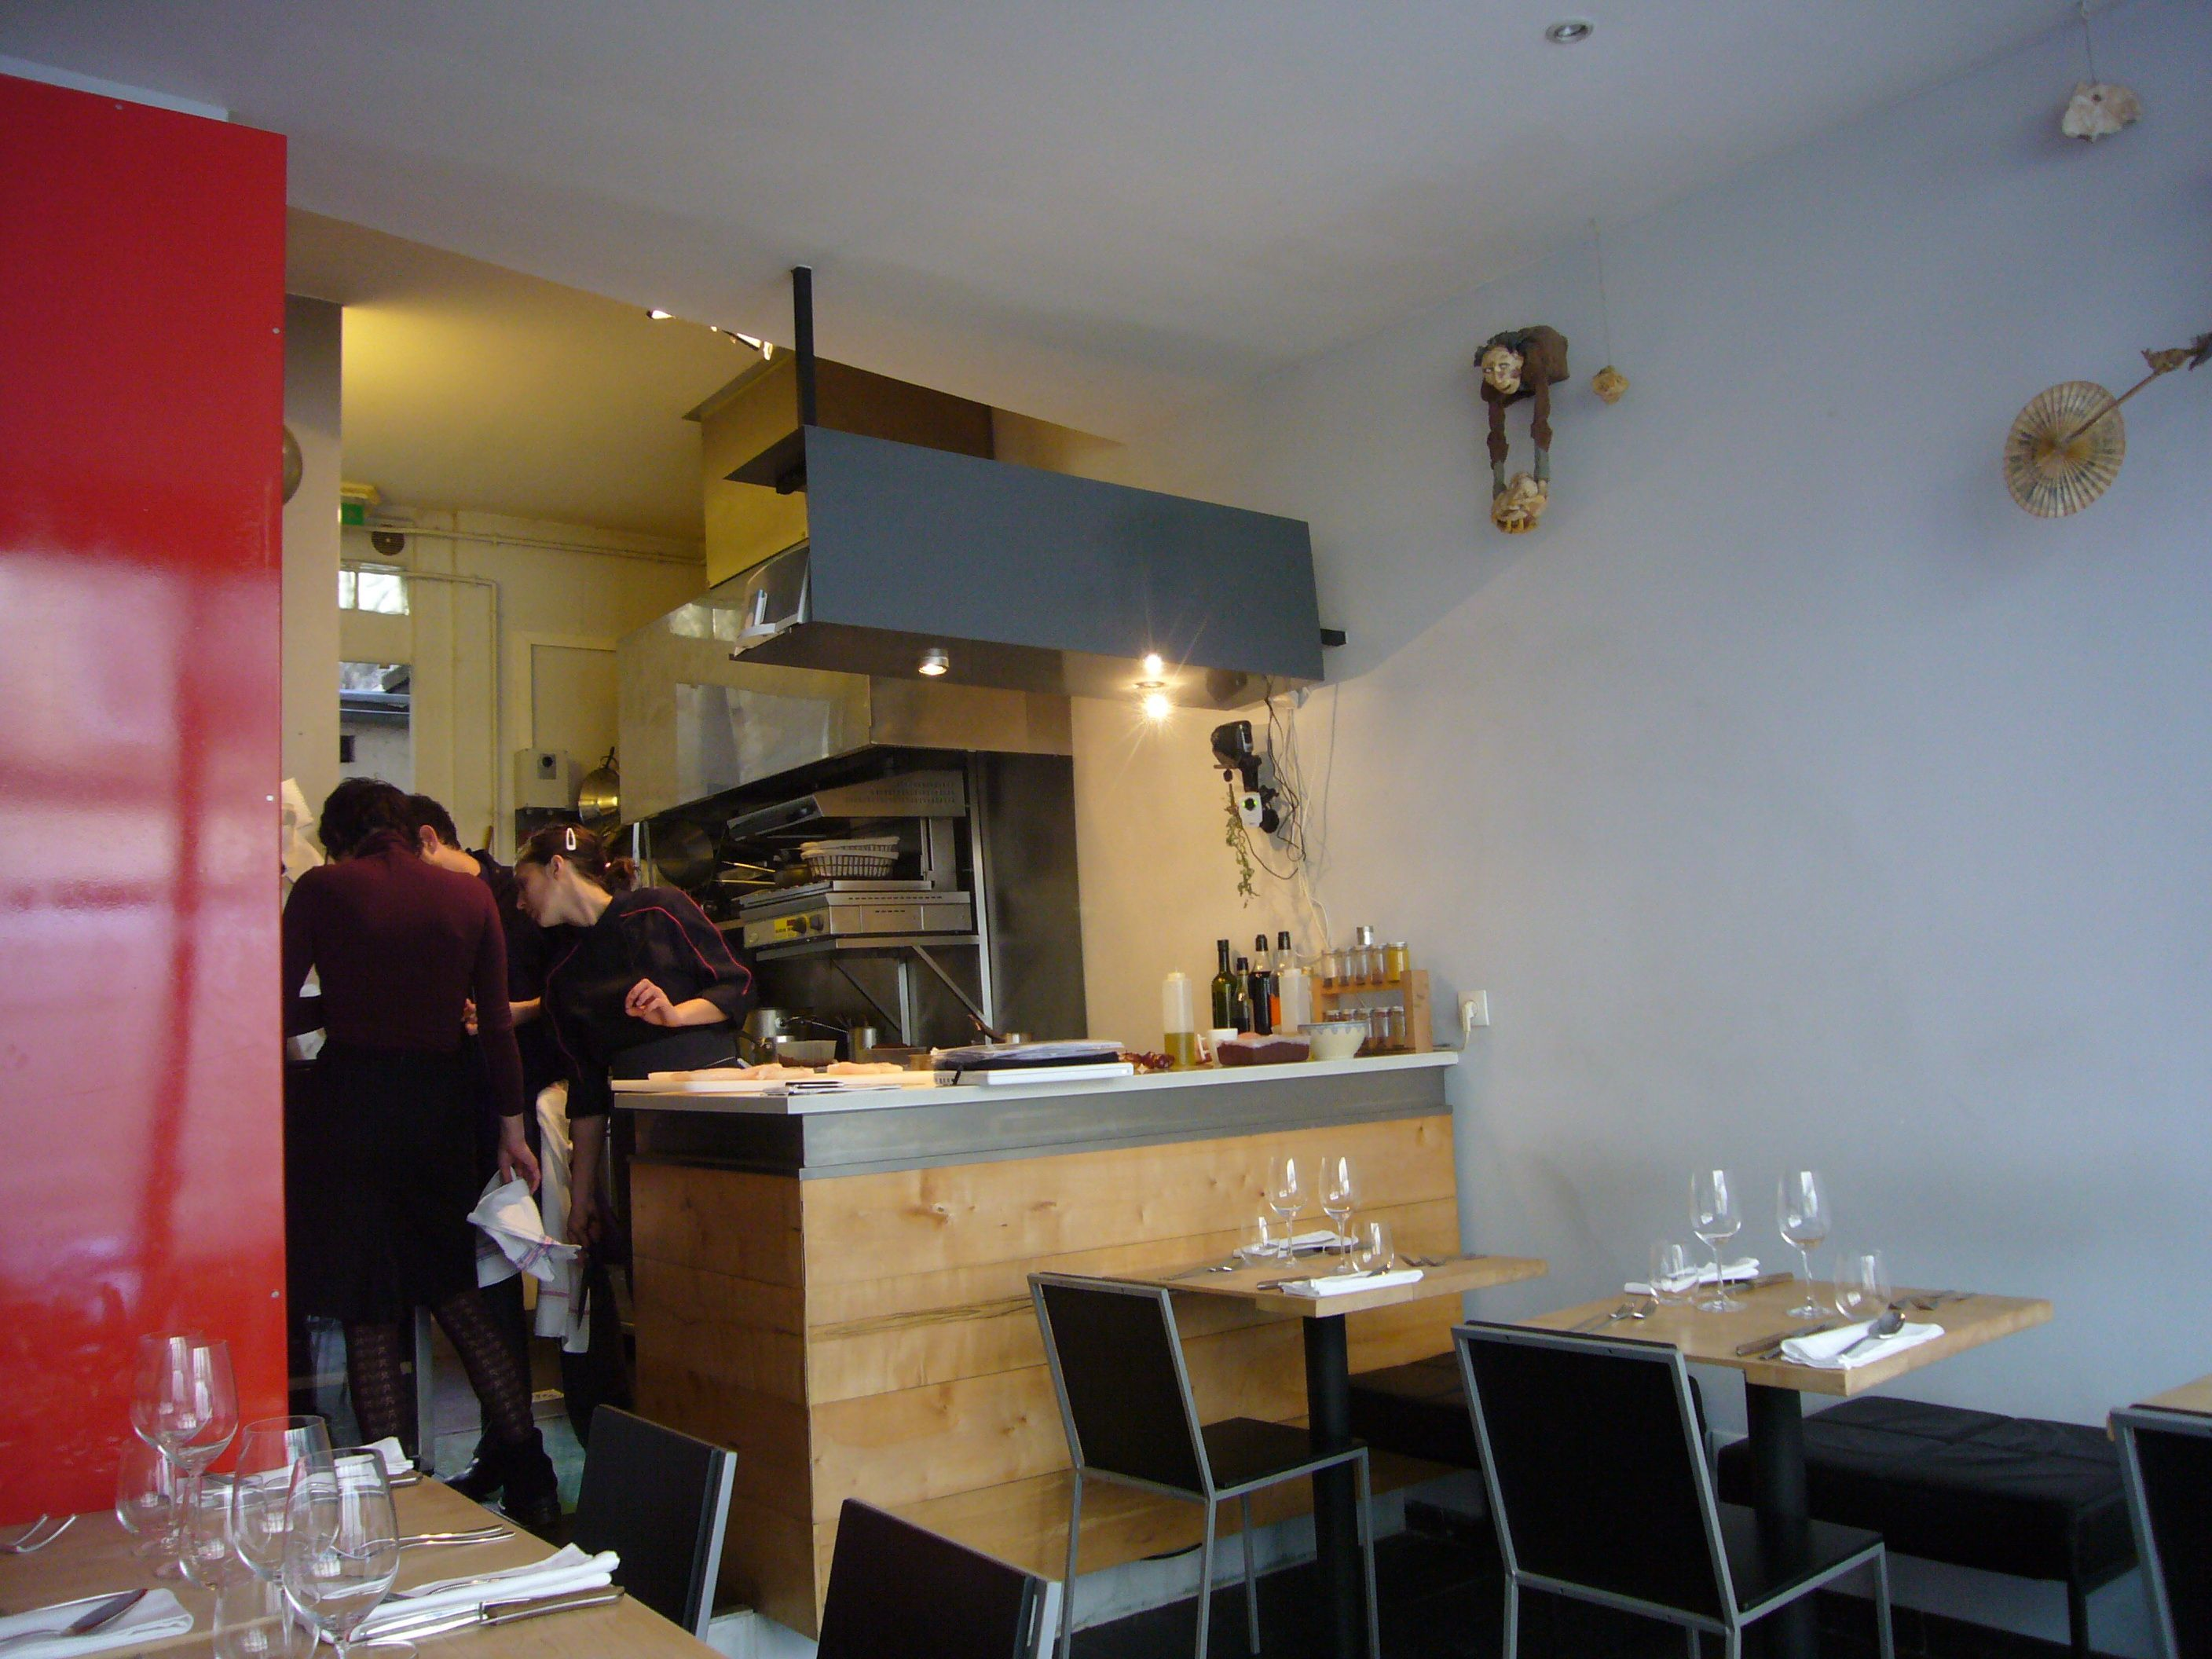 Furniture Mesmerizing Small Restaurant Kitchen Design With Small Stainless Steel Kitchen Cabin